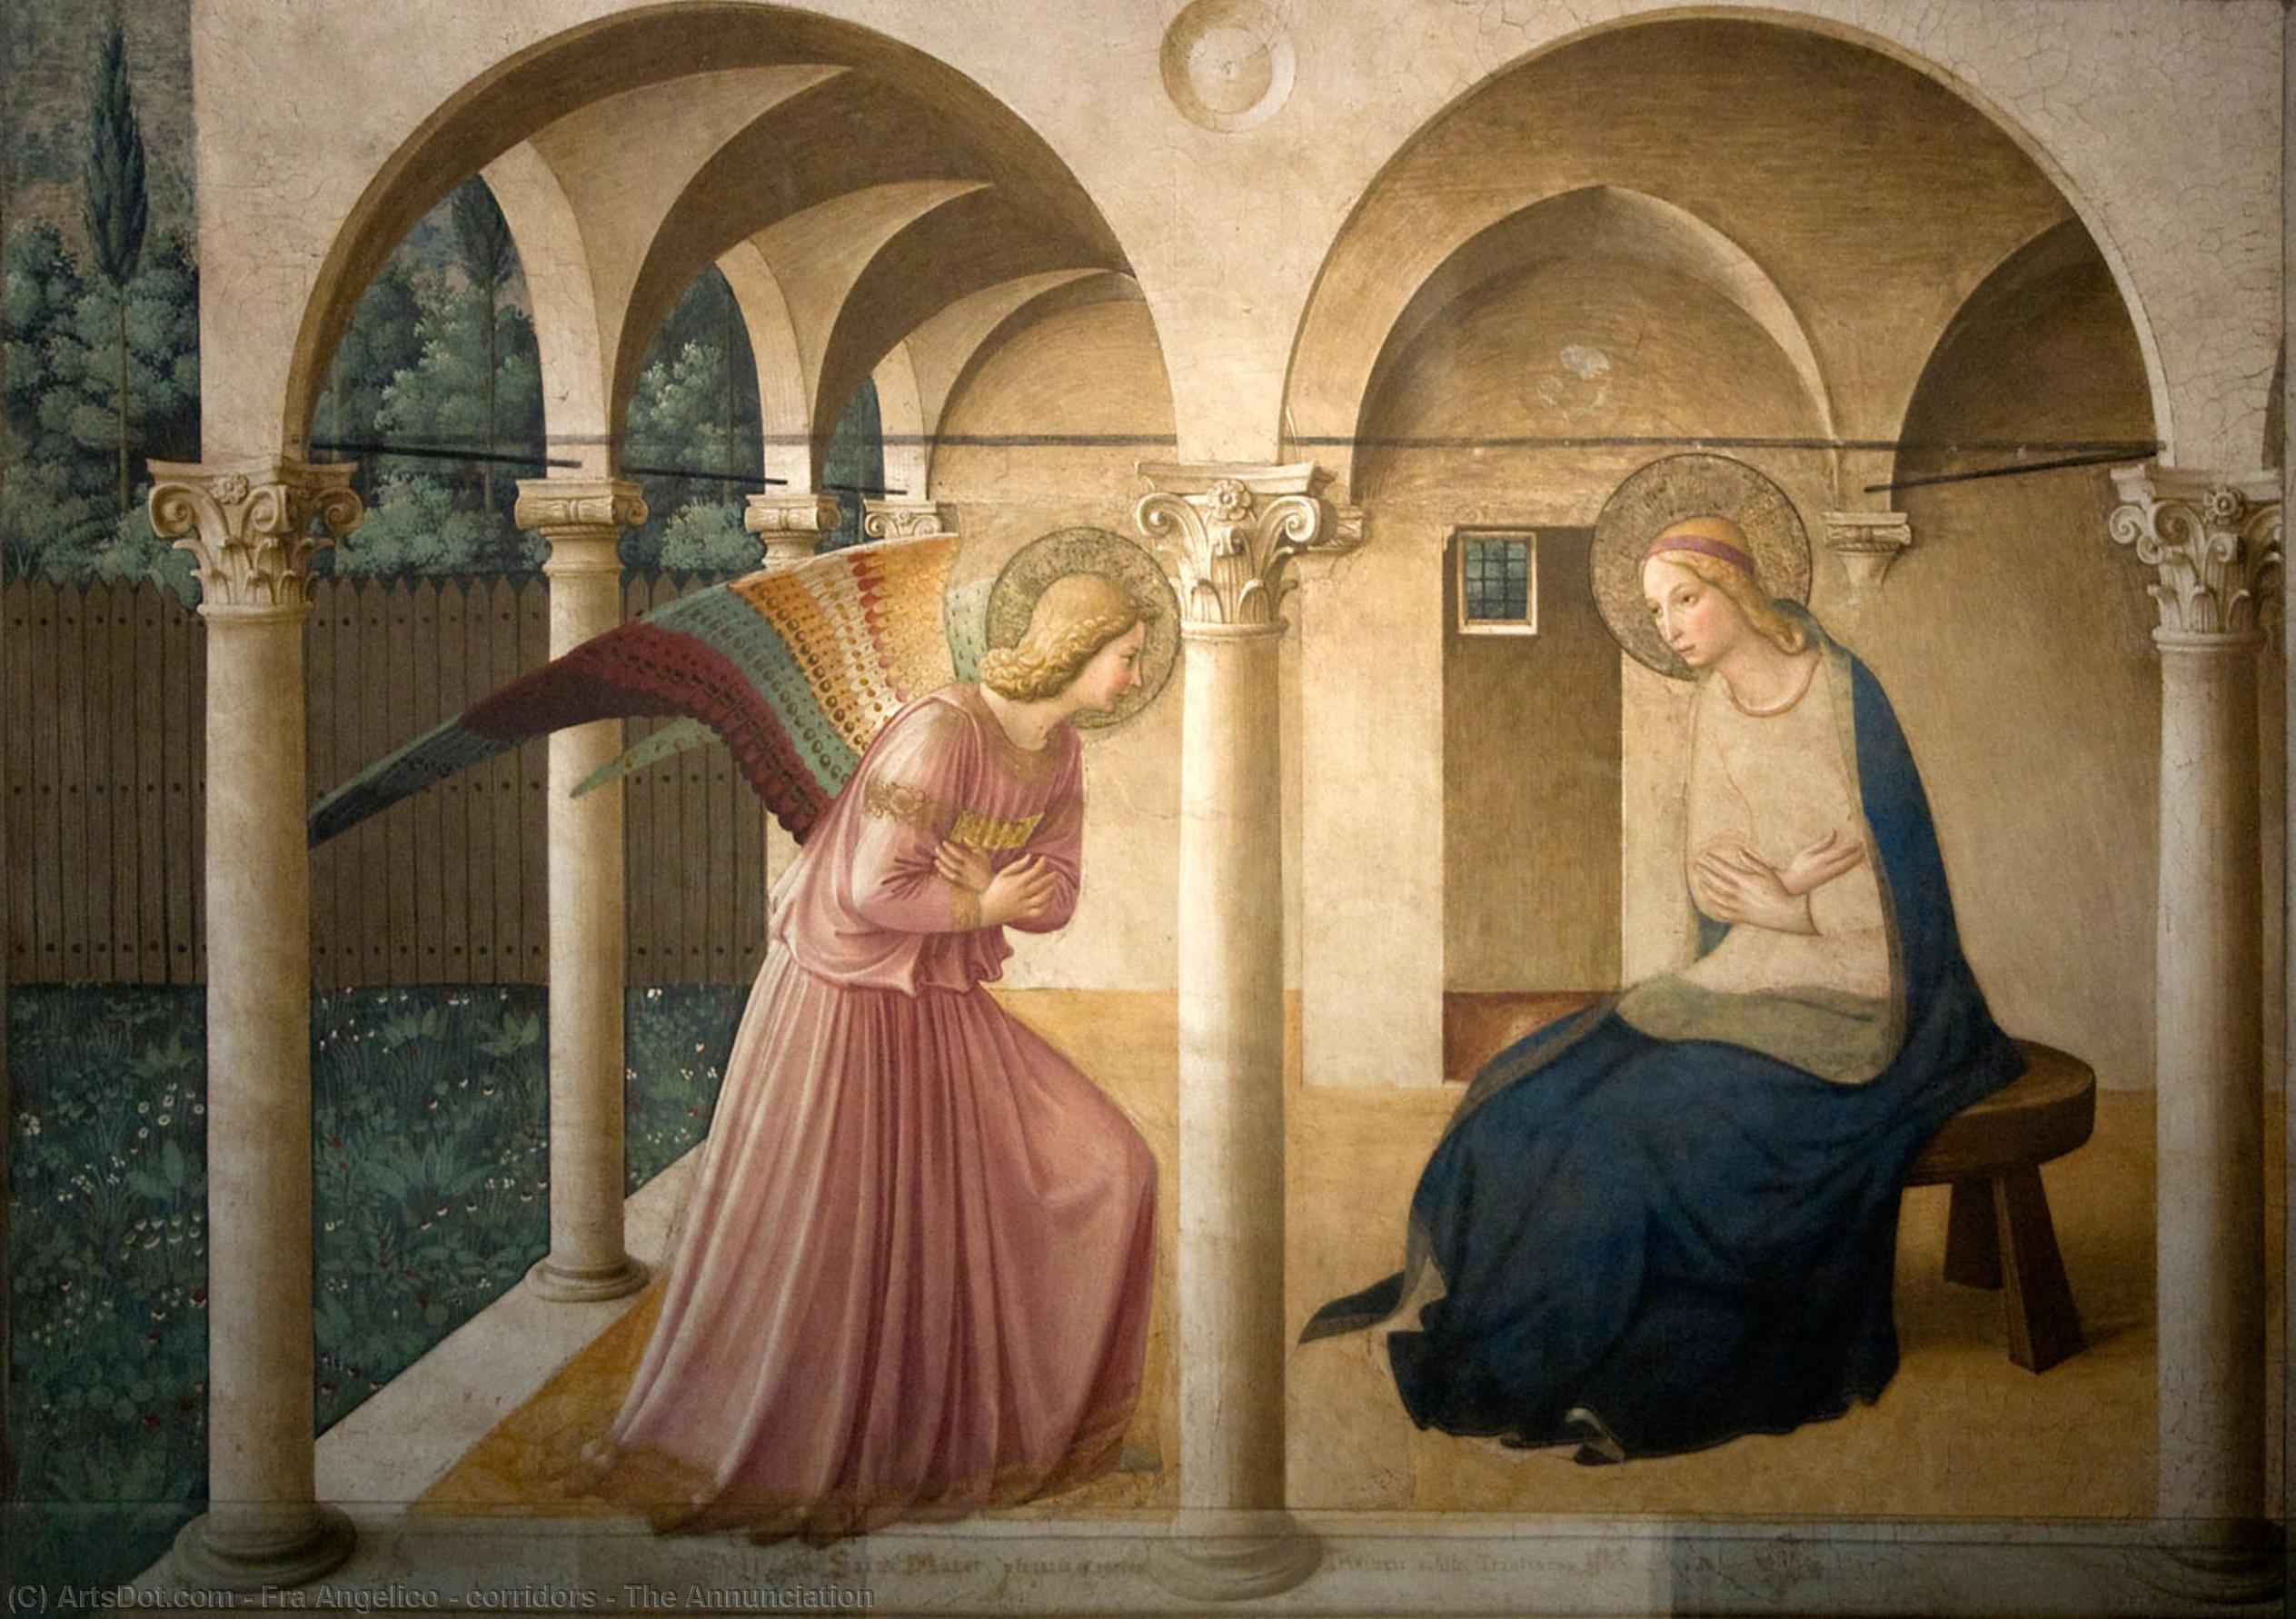 Wikioo.org - The Encyclopedia of Fine Arts - Painting, Artwork by Fra Angelico - corridors - The Annunciation